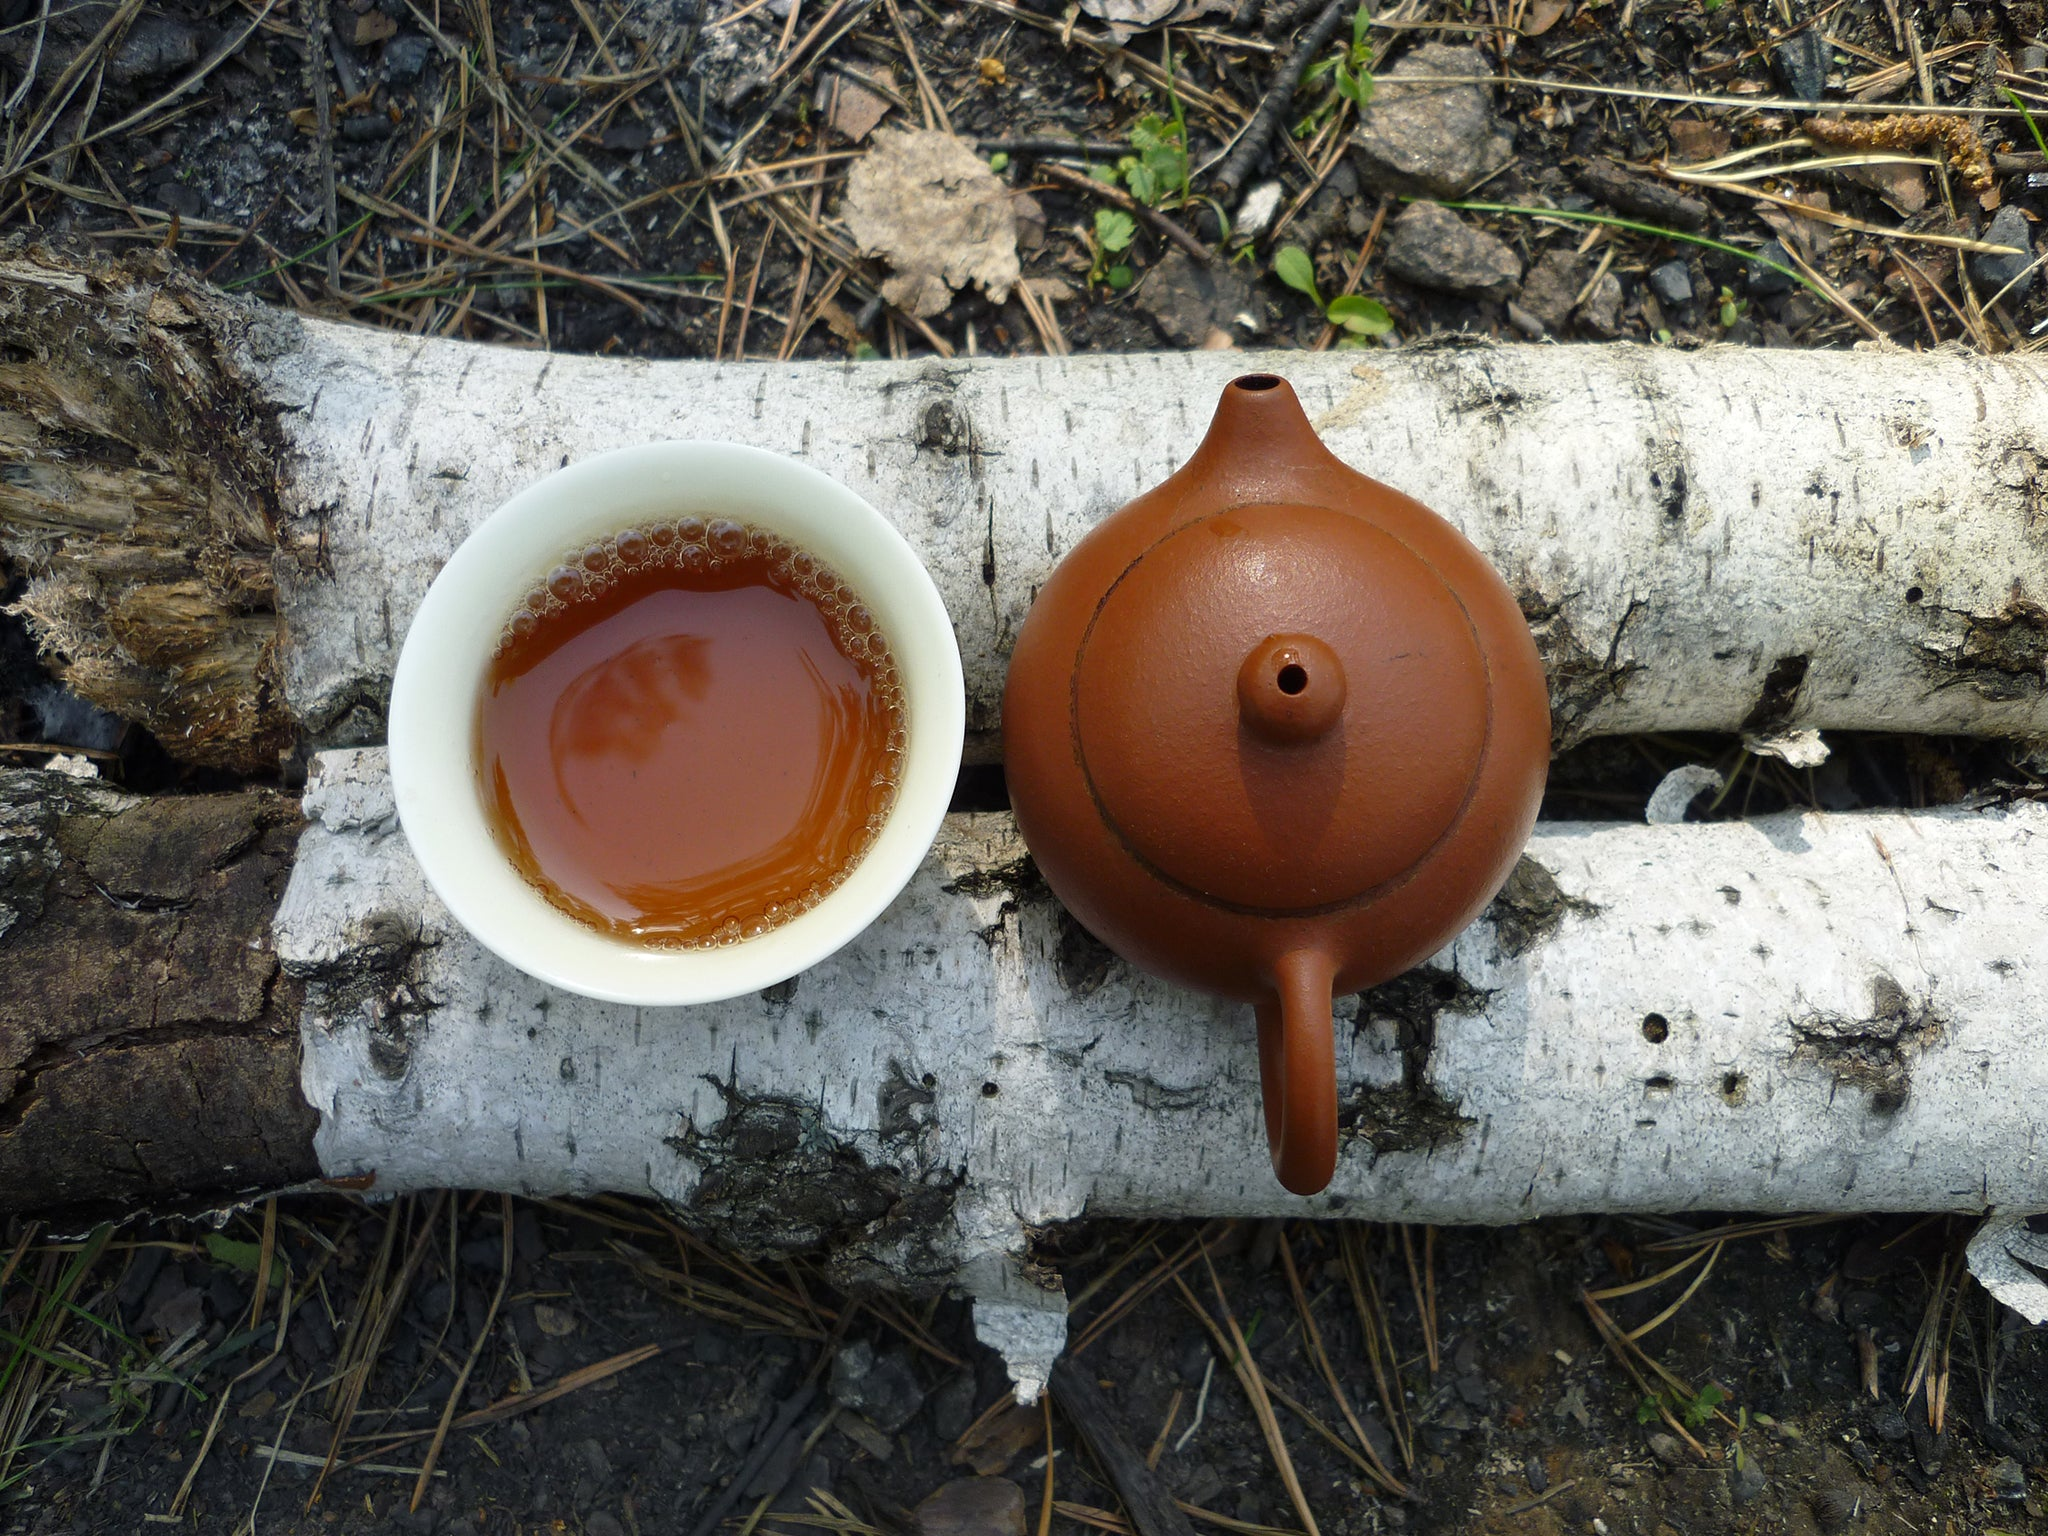 tea set on a log as part of a forest bathing tea ceremony.